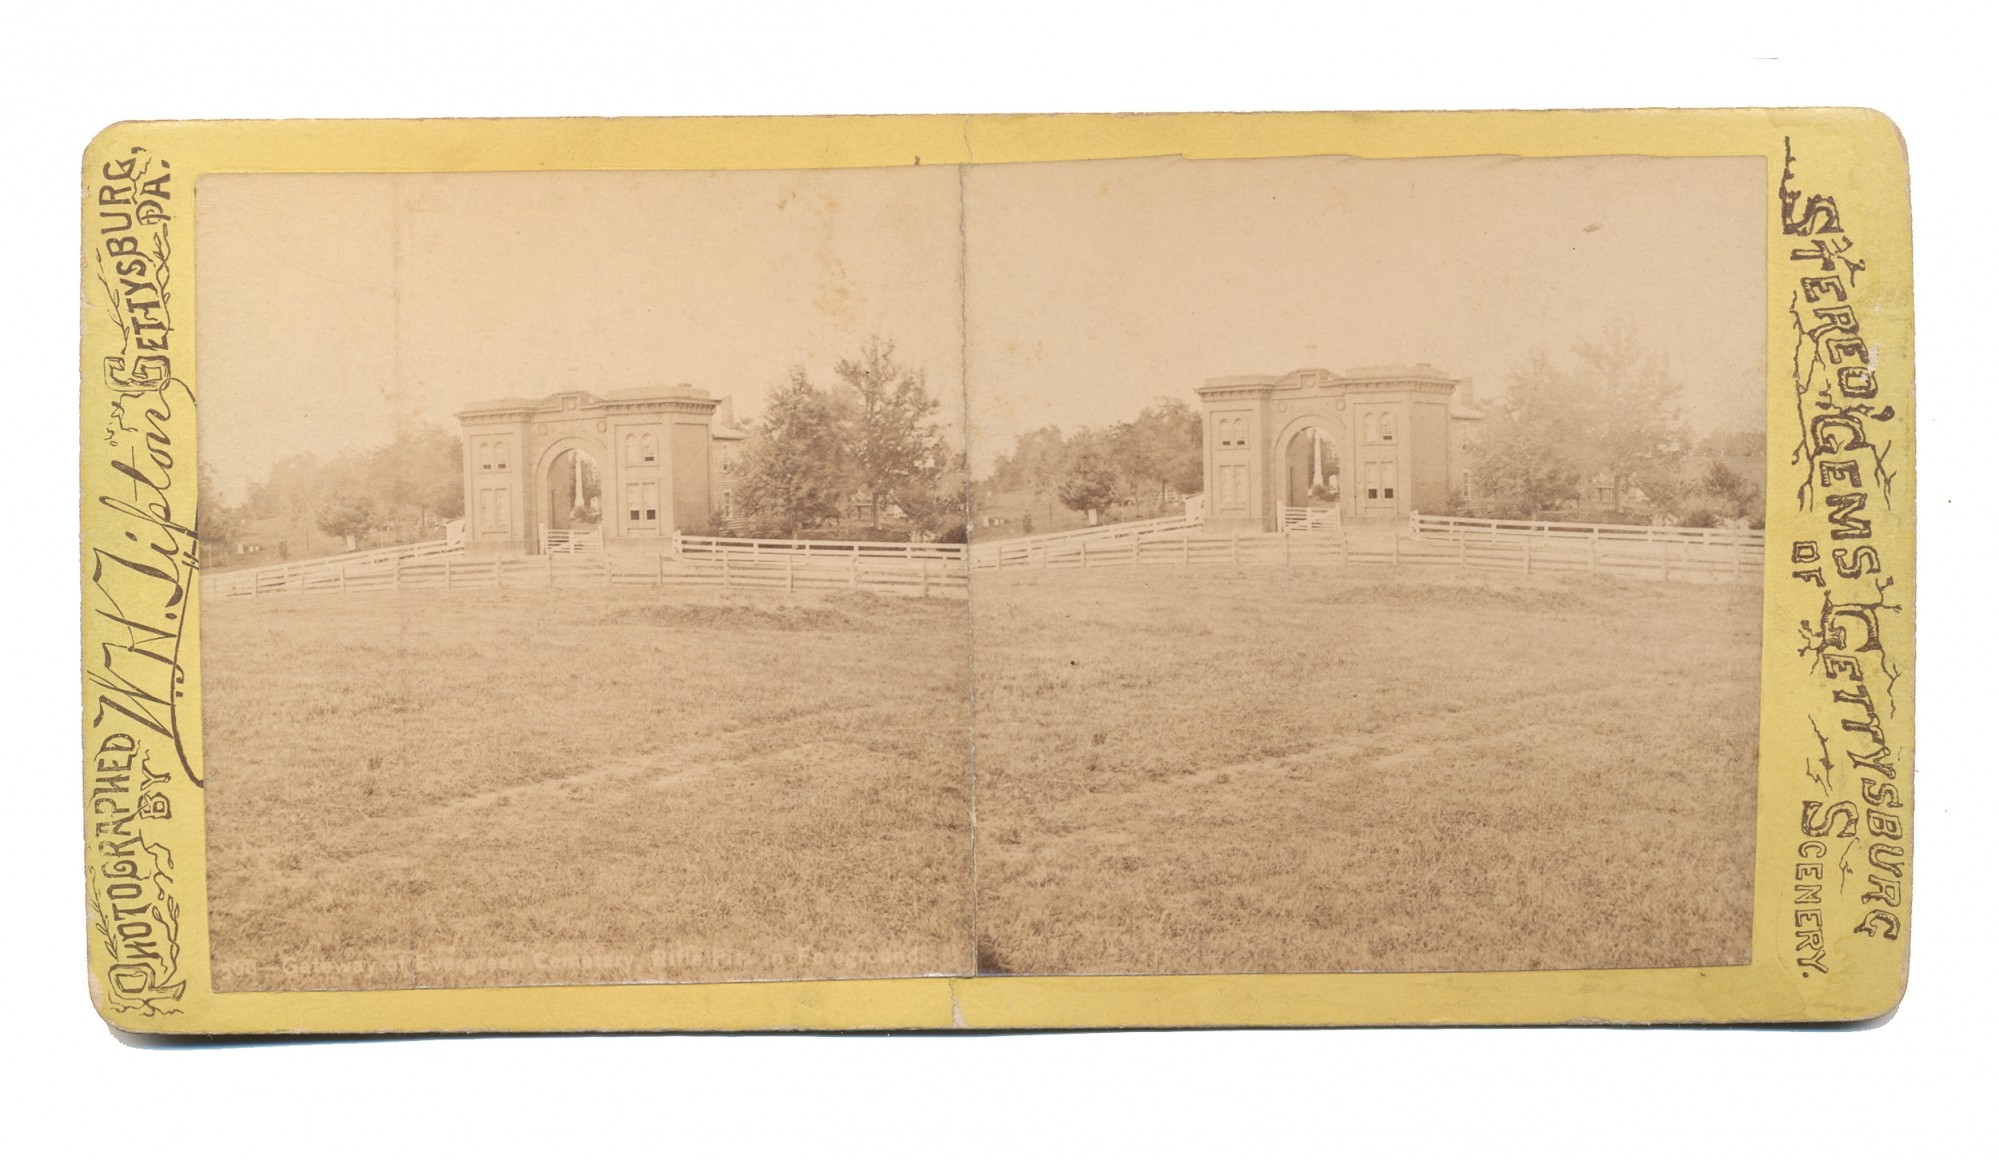 TIPTON STEREO VIEW SHOWING THE GATEHOUSE OF EVERGREEN CEMETERY, GETTYSBURG